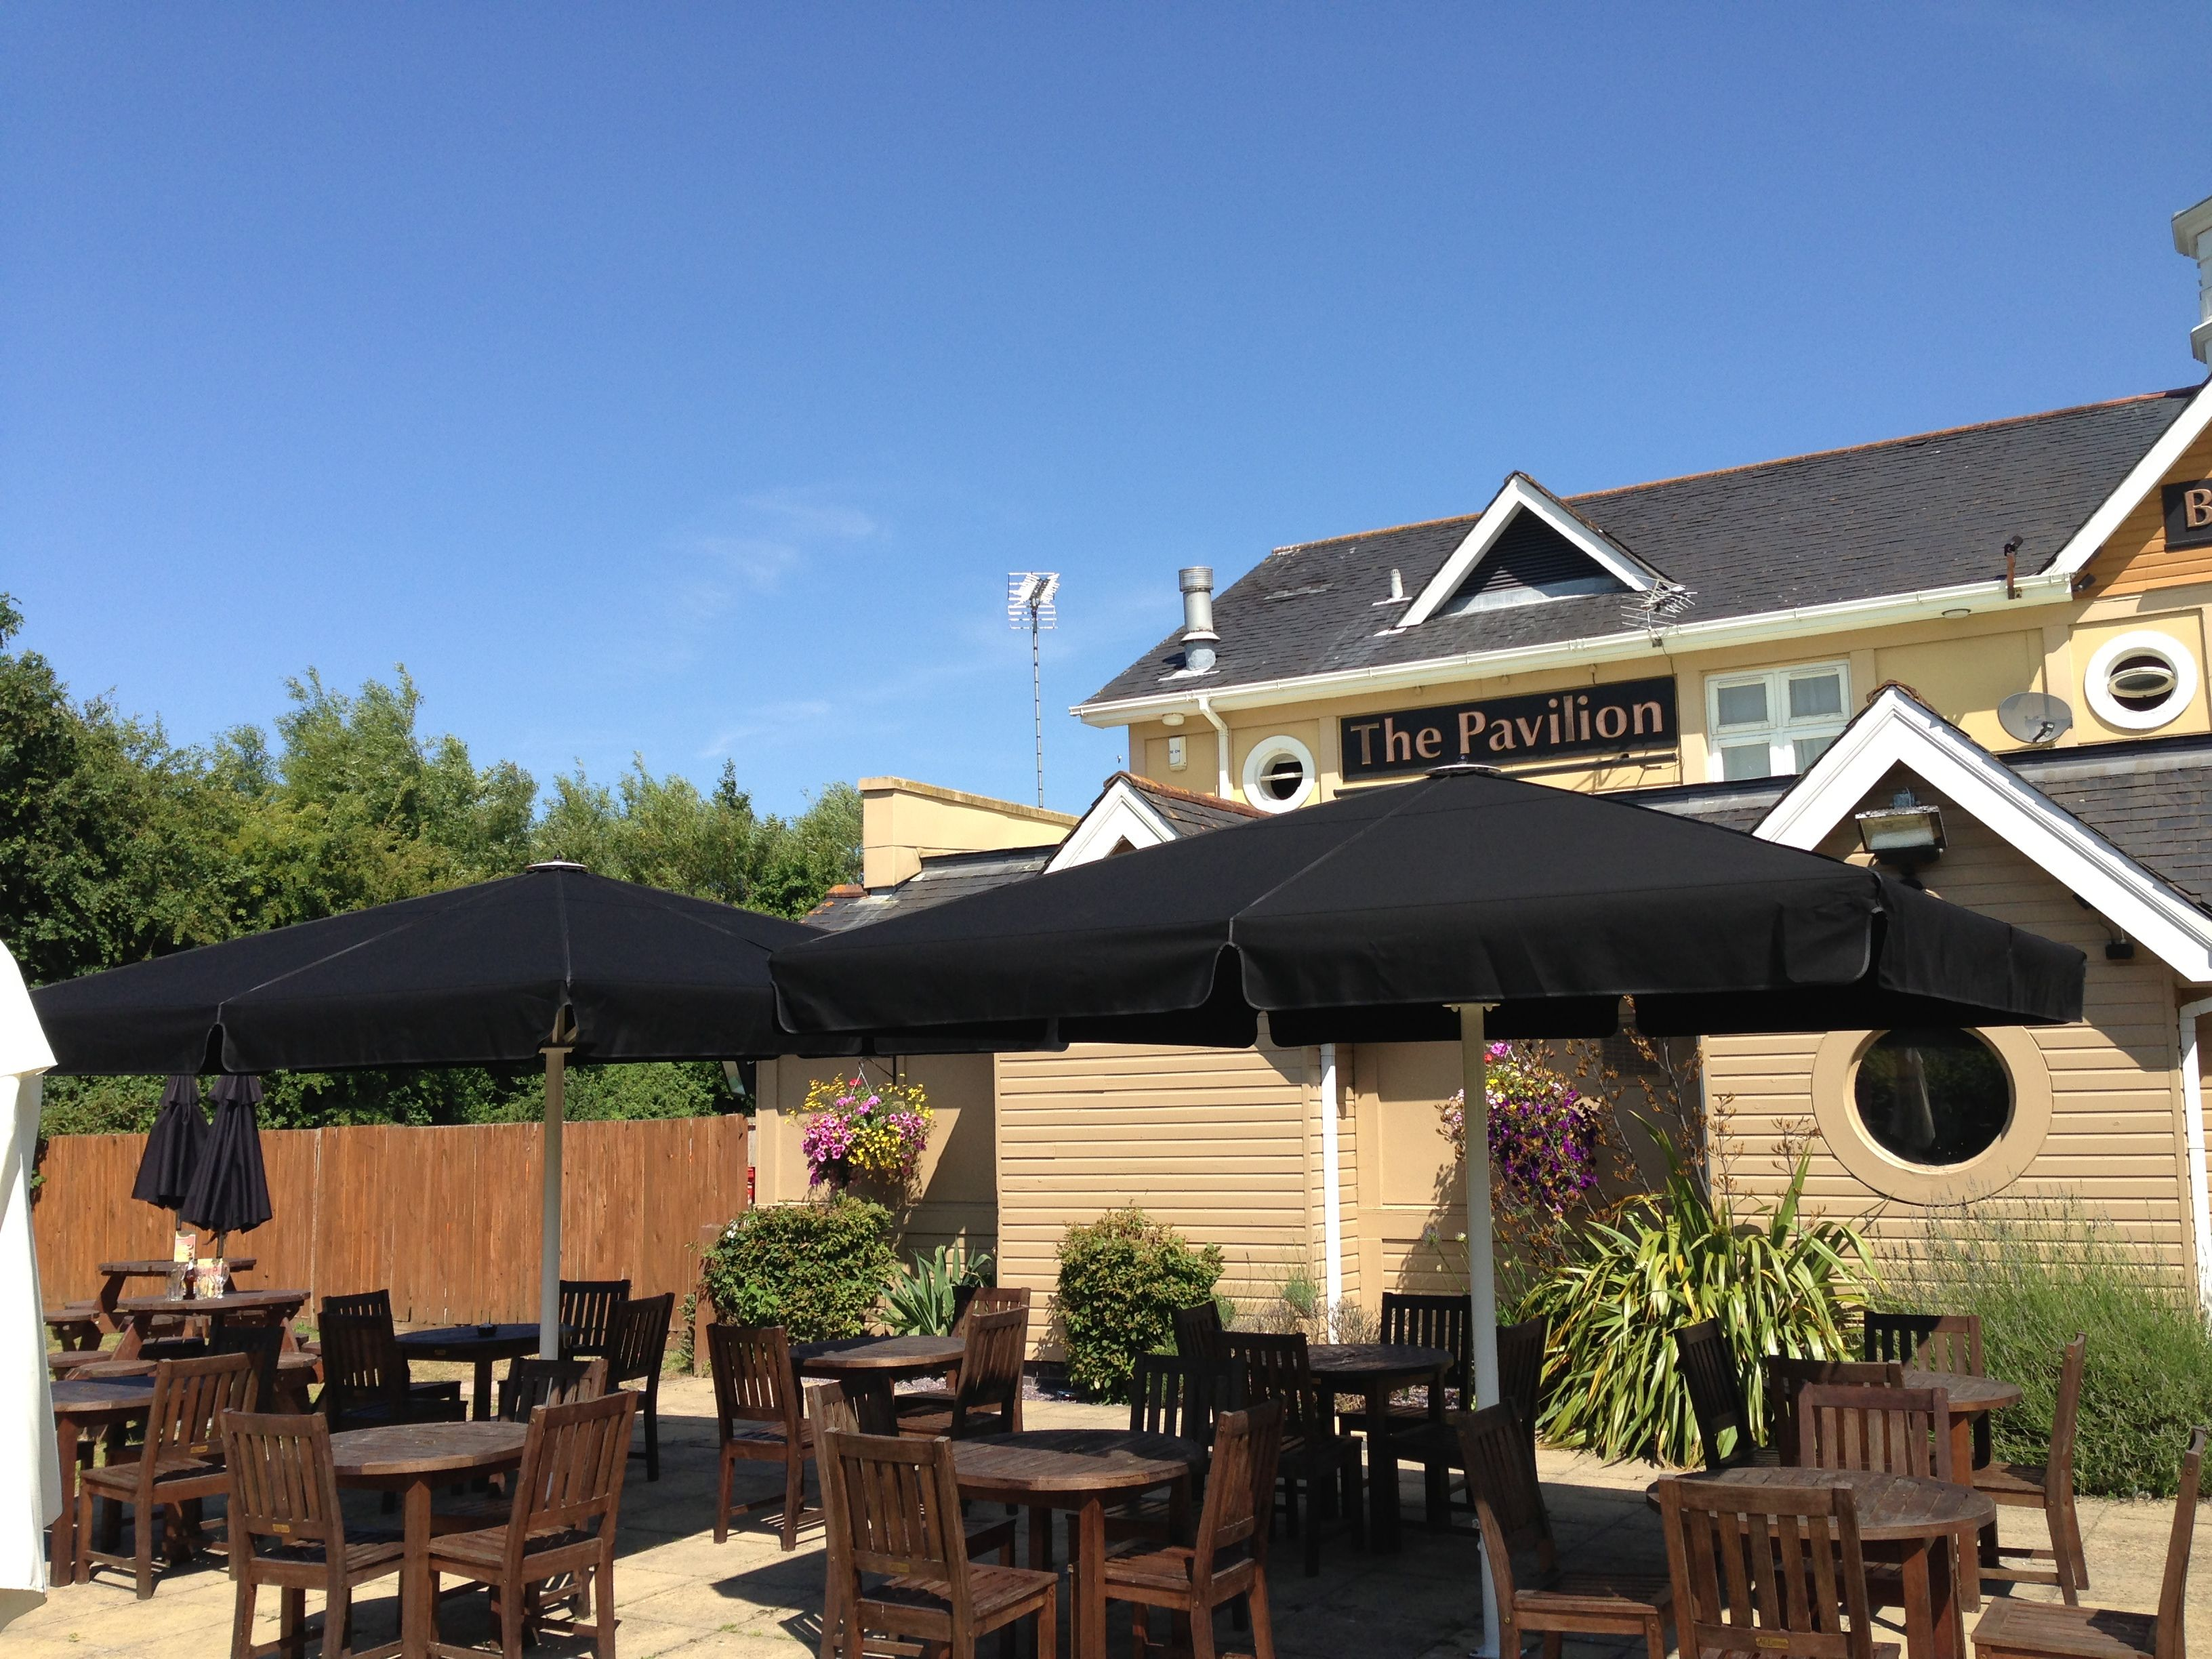 Brand new giant umbrellas at Beefeater Pavillion see